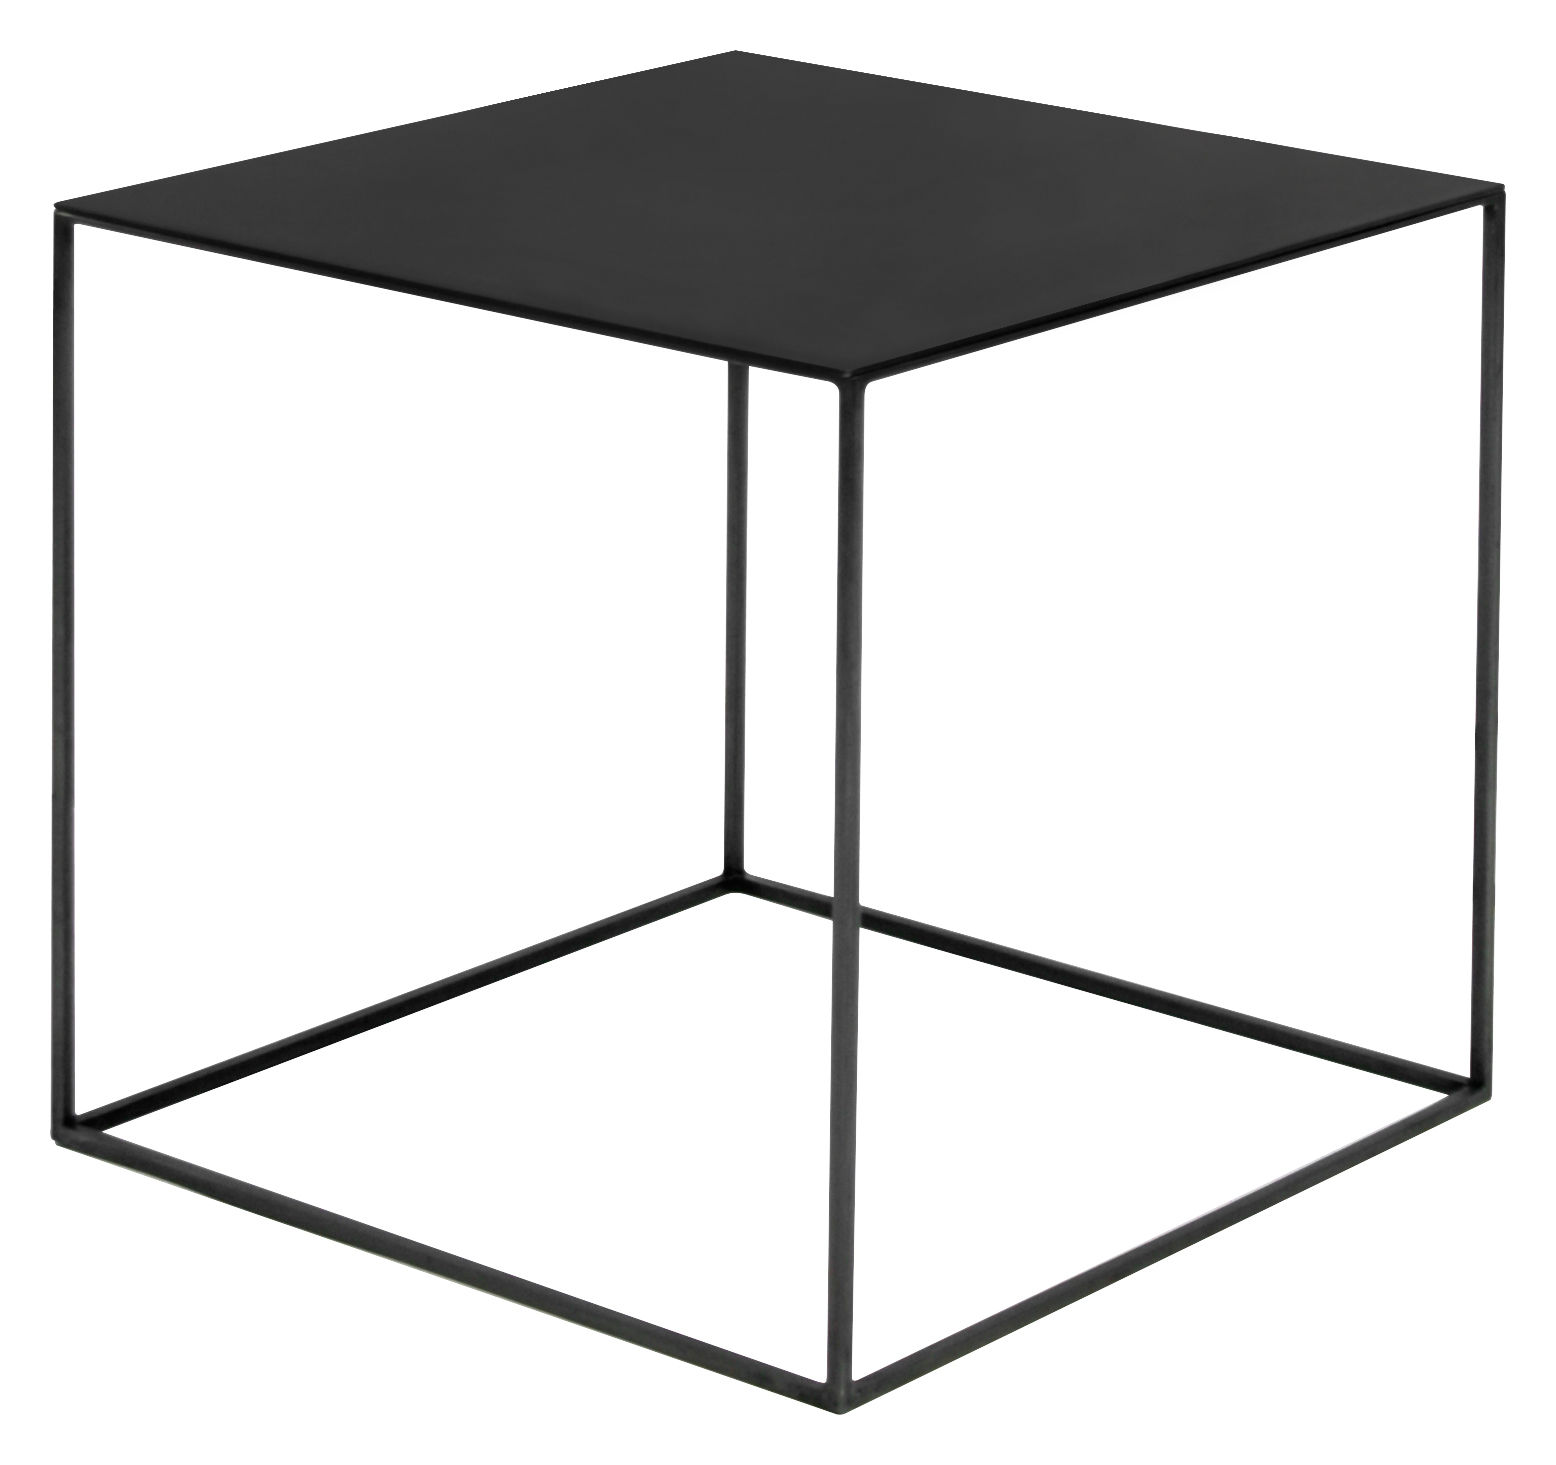 Slim irony coffee table black steel by zeus for Table basse scandinave noire